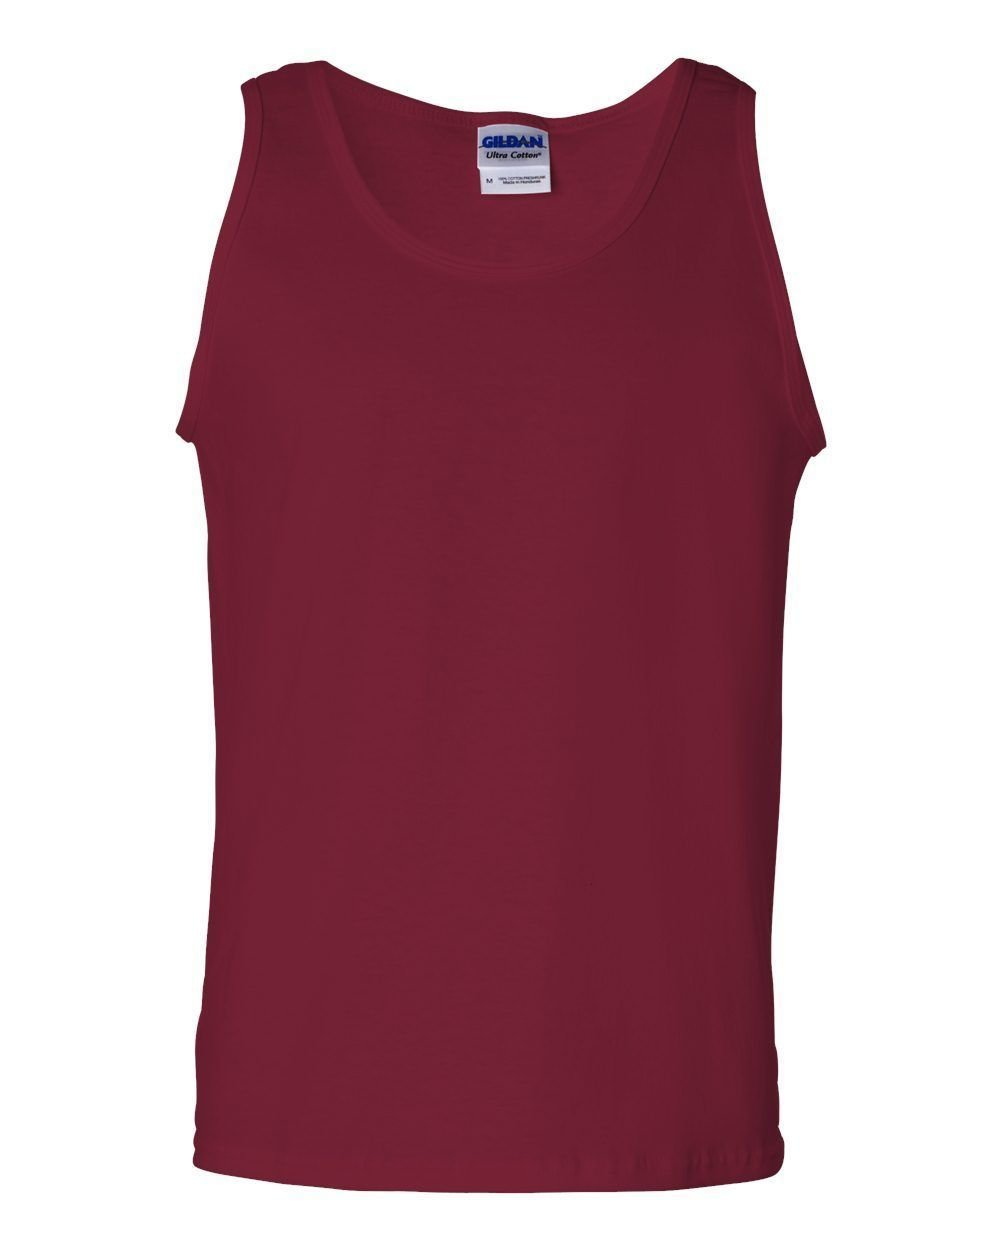 Gildan Tank Top Shirt with Logo